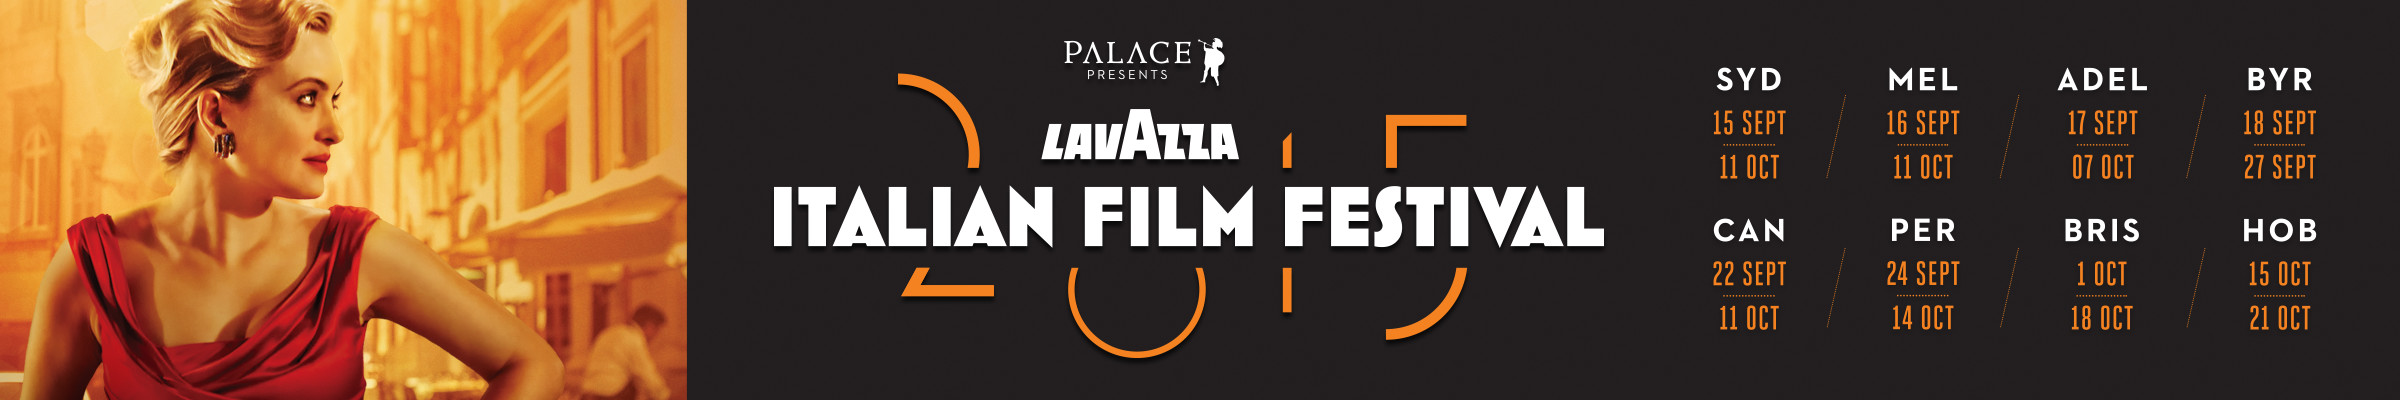 Palace presents the Lavazza Italian Film Festival 2015